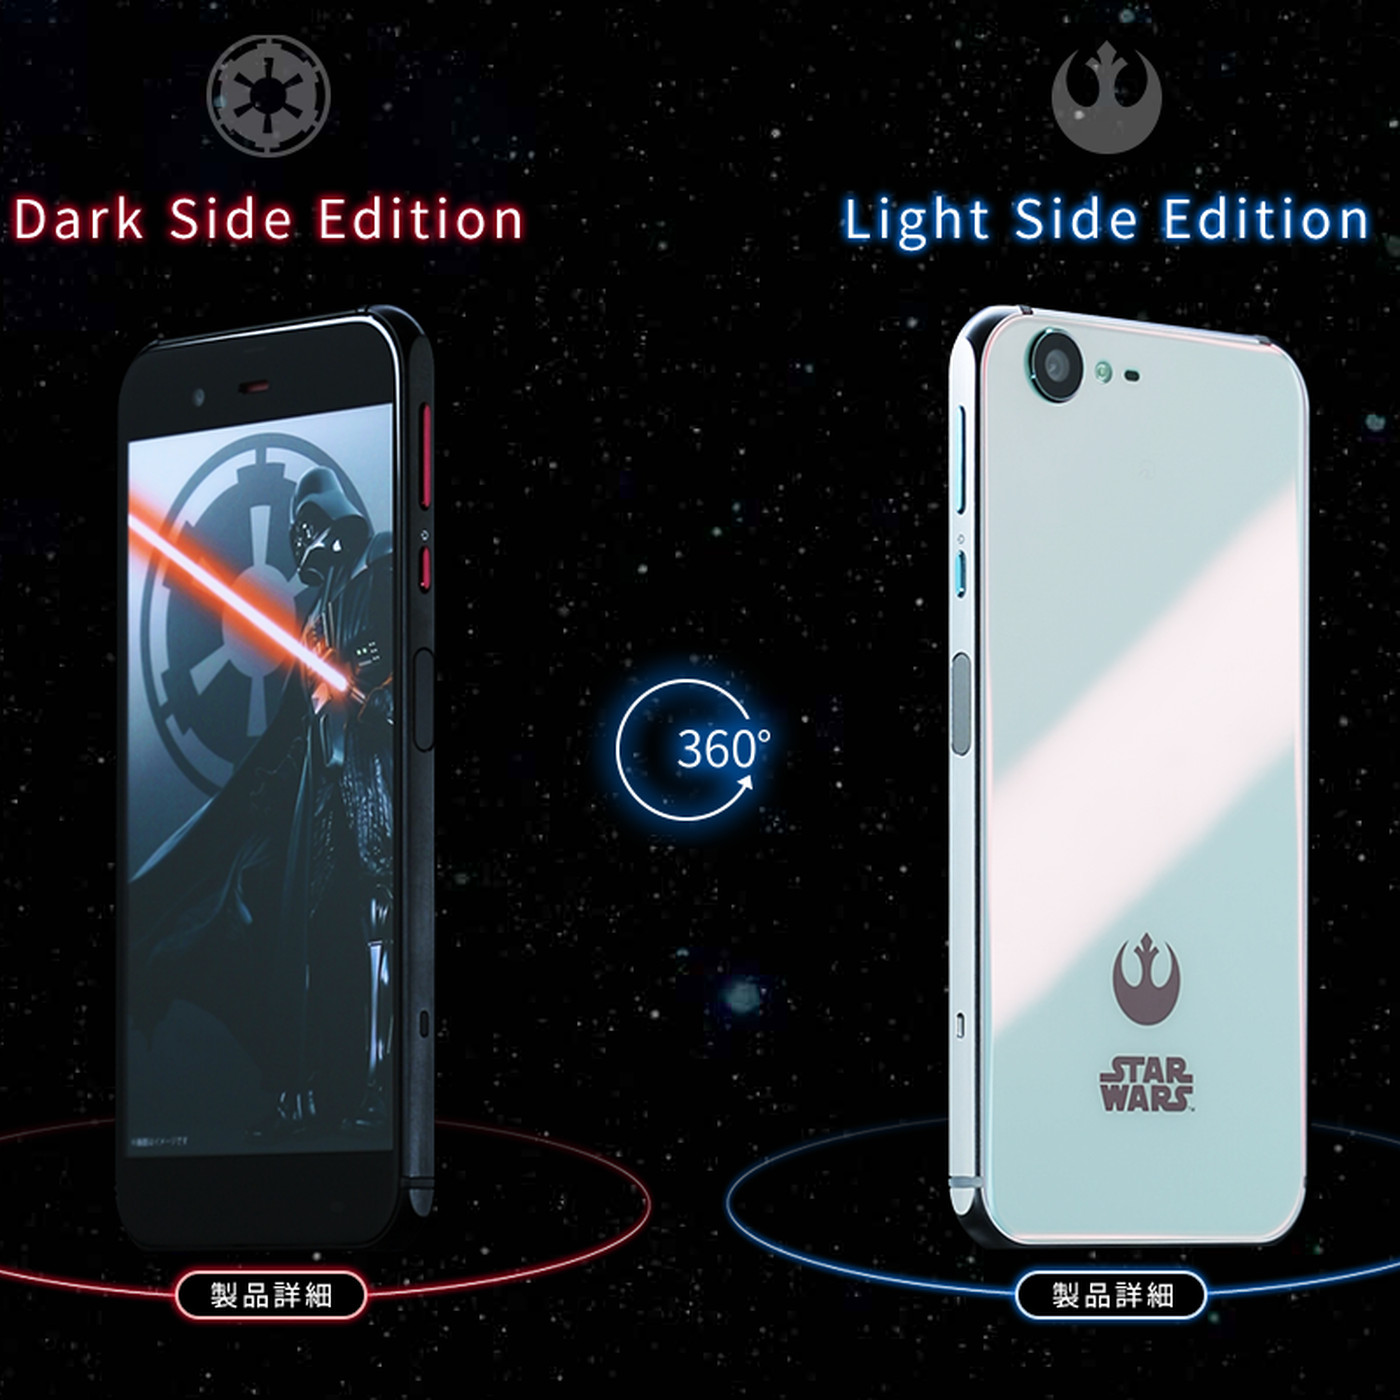 Star Wars Smartphones Are Coming To Softbank In Japan The Verge